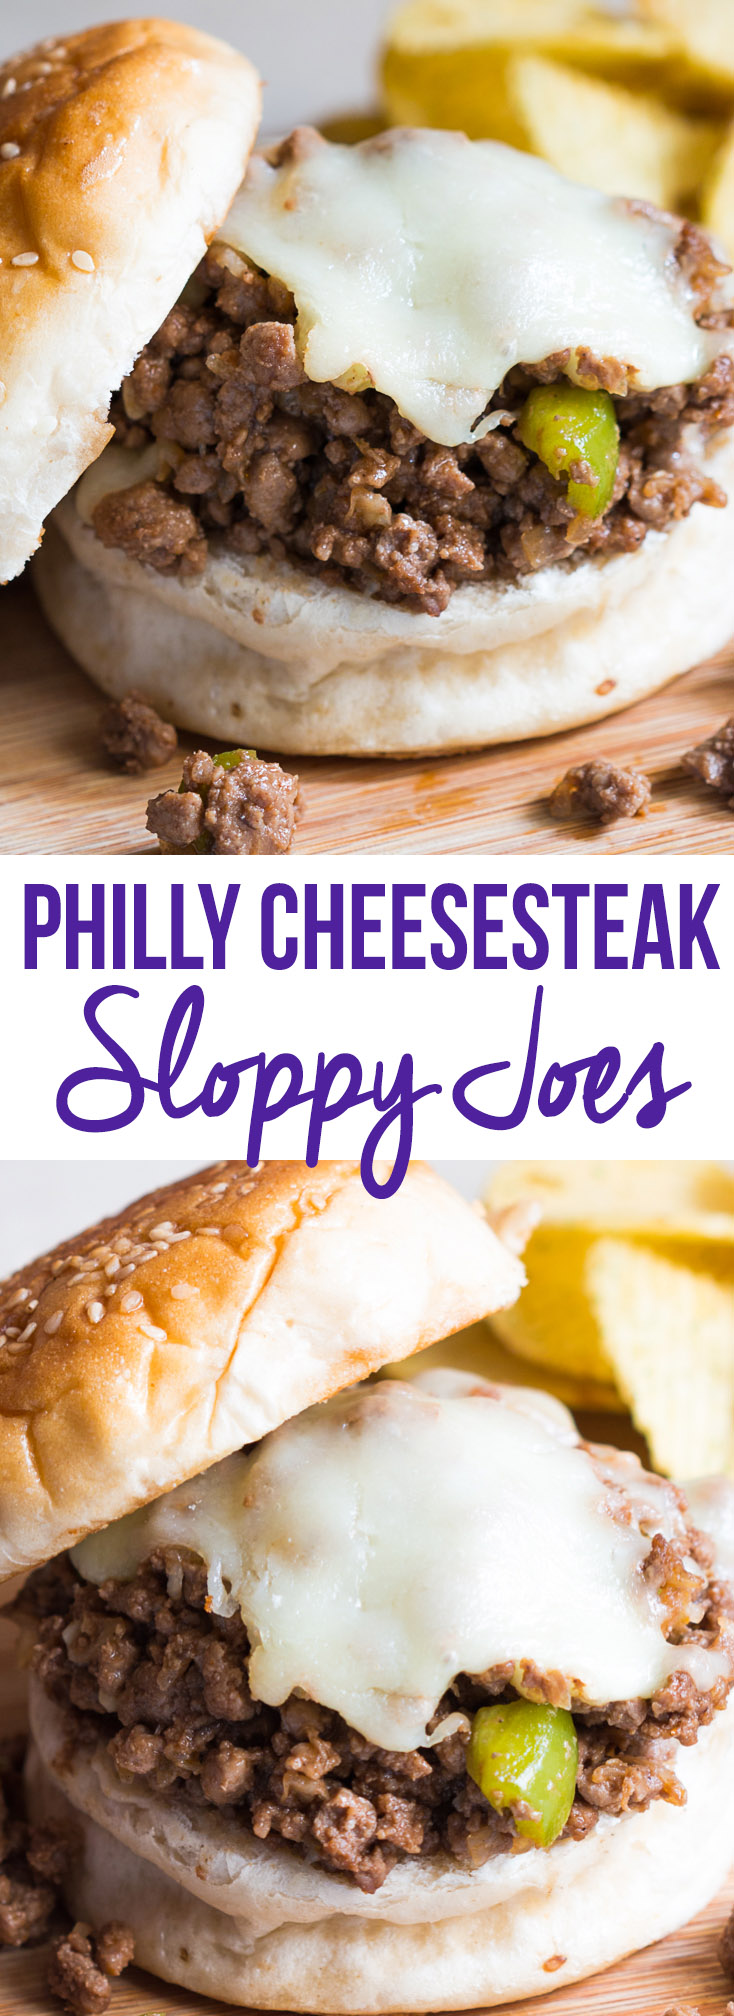 philly cheesesteak sloppy joes pin